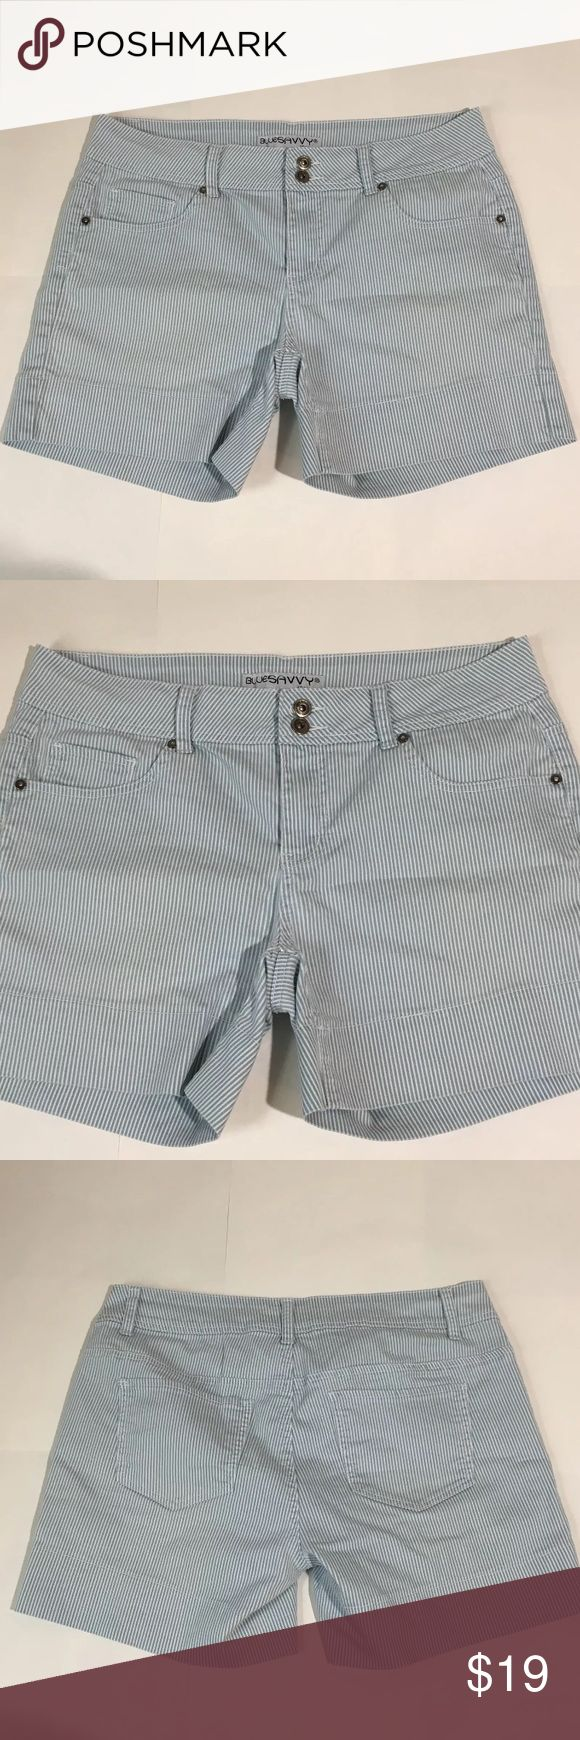 "Blue Savvy Jean Blue White Striped Shorts Sz 14 Women's Blue Savvy Jeans blue and white striped Jean Shorts Size 14. Measurements 17.5"" waist laying flat, 14.5"" waist to hem, 5.5"" inseam. Excellent condition no flaws Blue Savvy Shorts Jean Shorts"